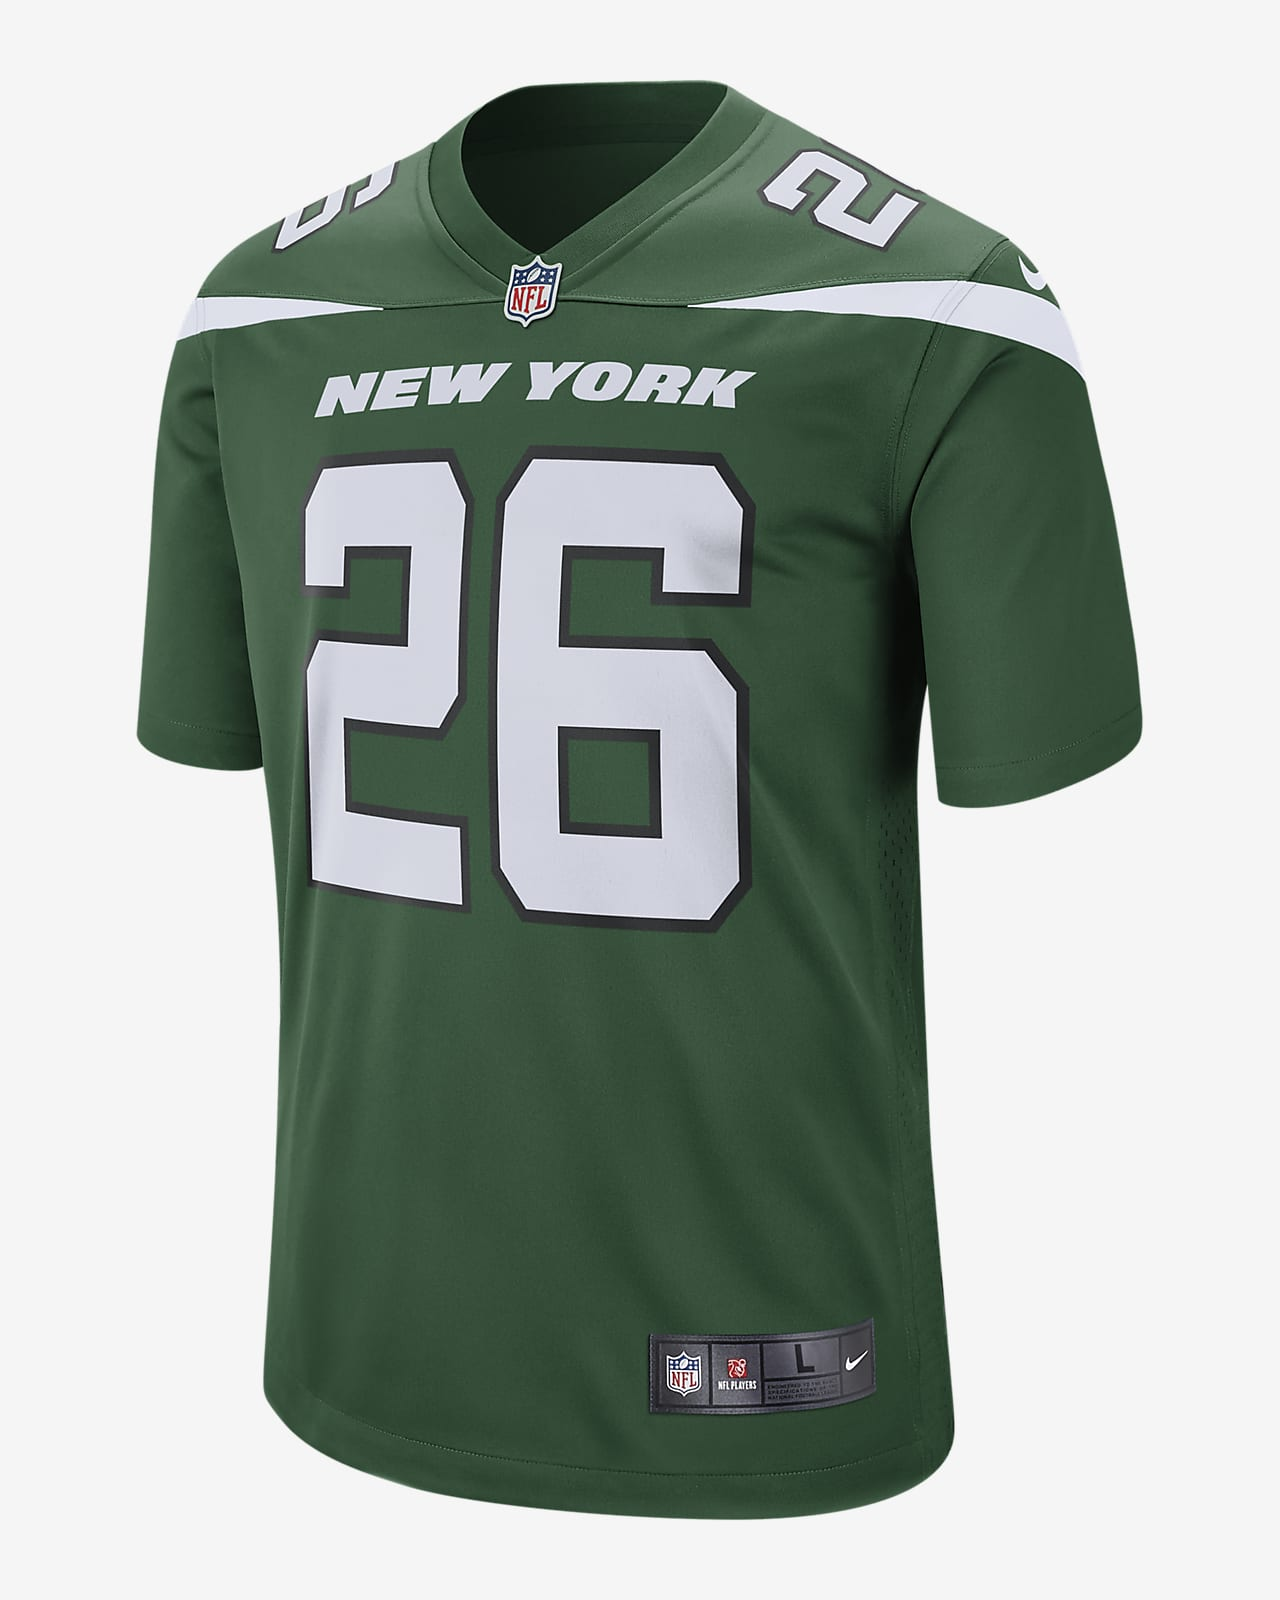 NFL New York Jets (Le'Veon Bell) Men's Game American Football Jersey